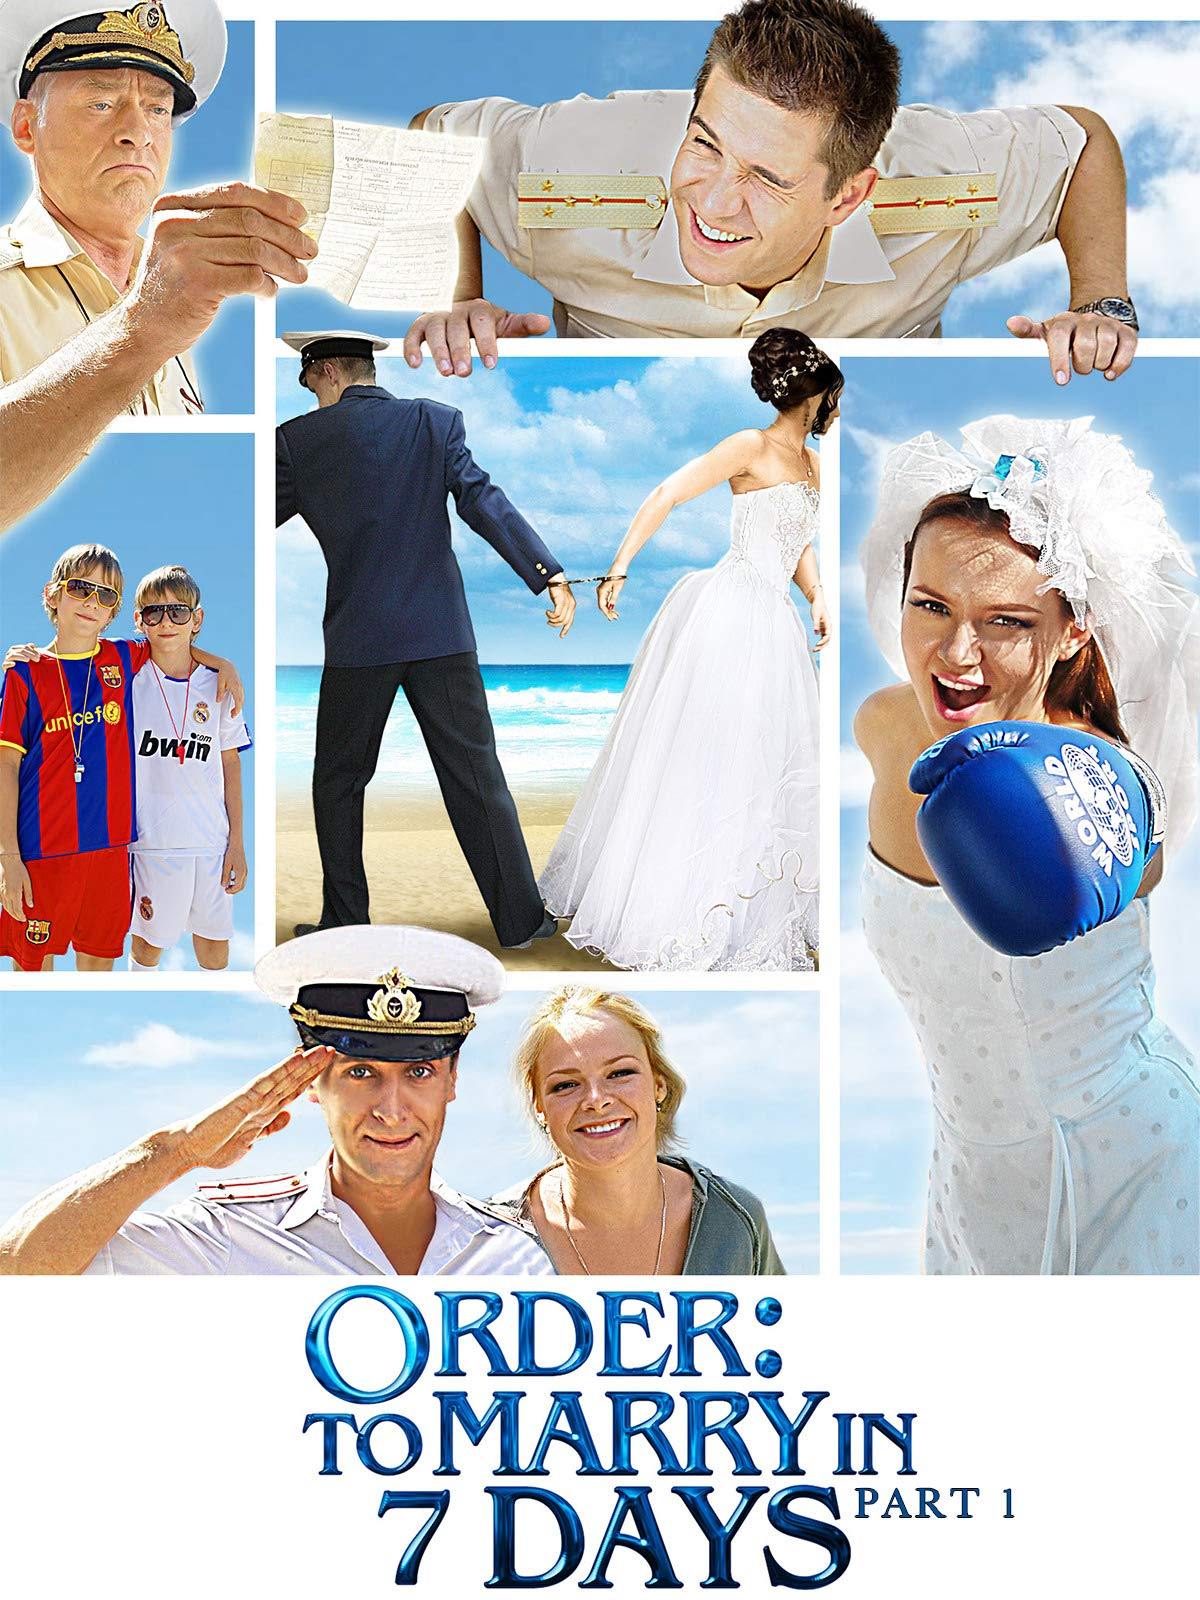 Order: To Marry in 7 Days - Part 1